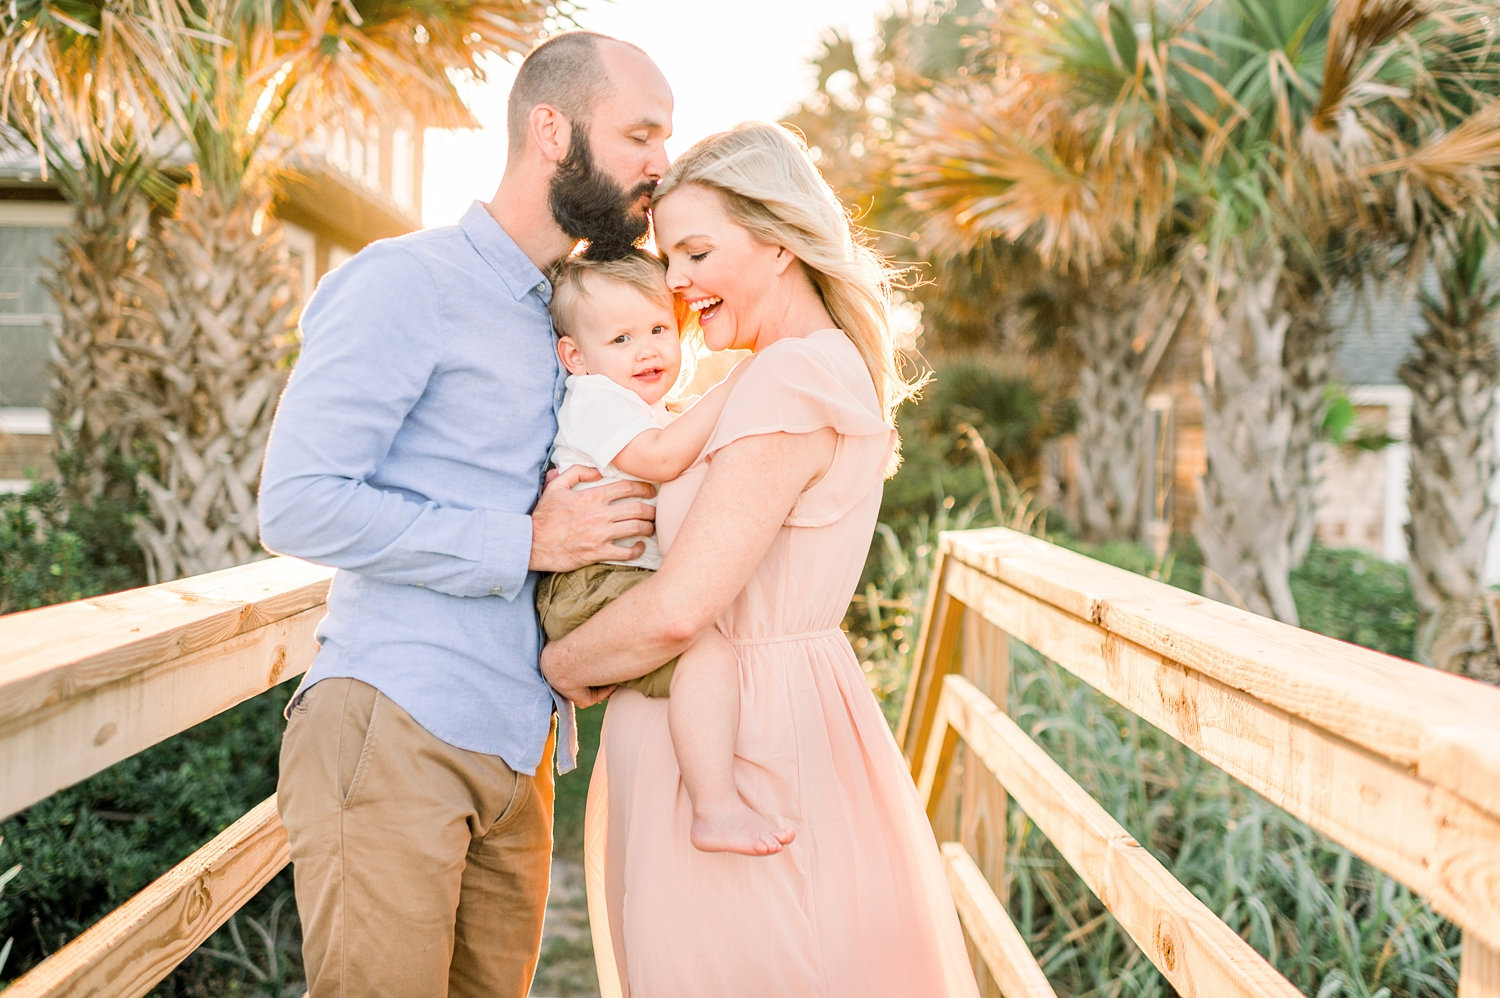 father kissing mother's forehead, man with a beard, little boy, blonde woman, Florida beach, Rya Duncklee